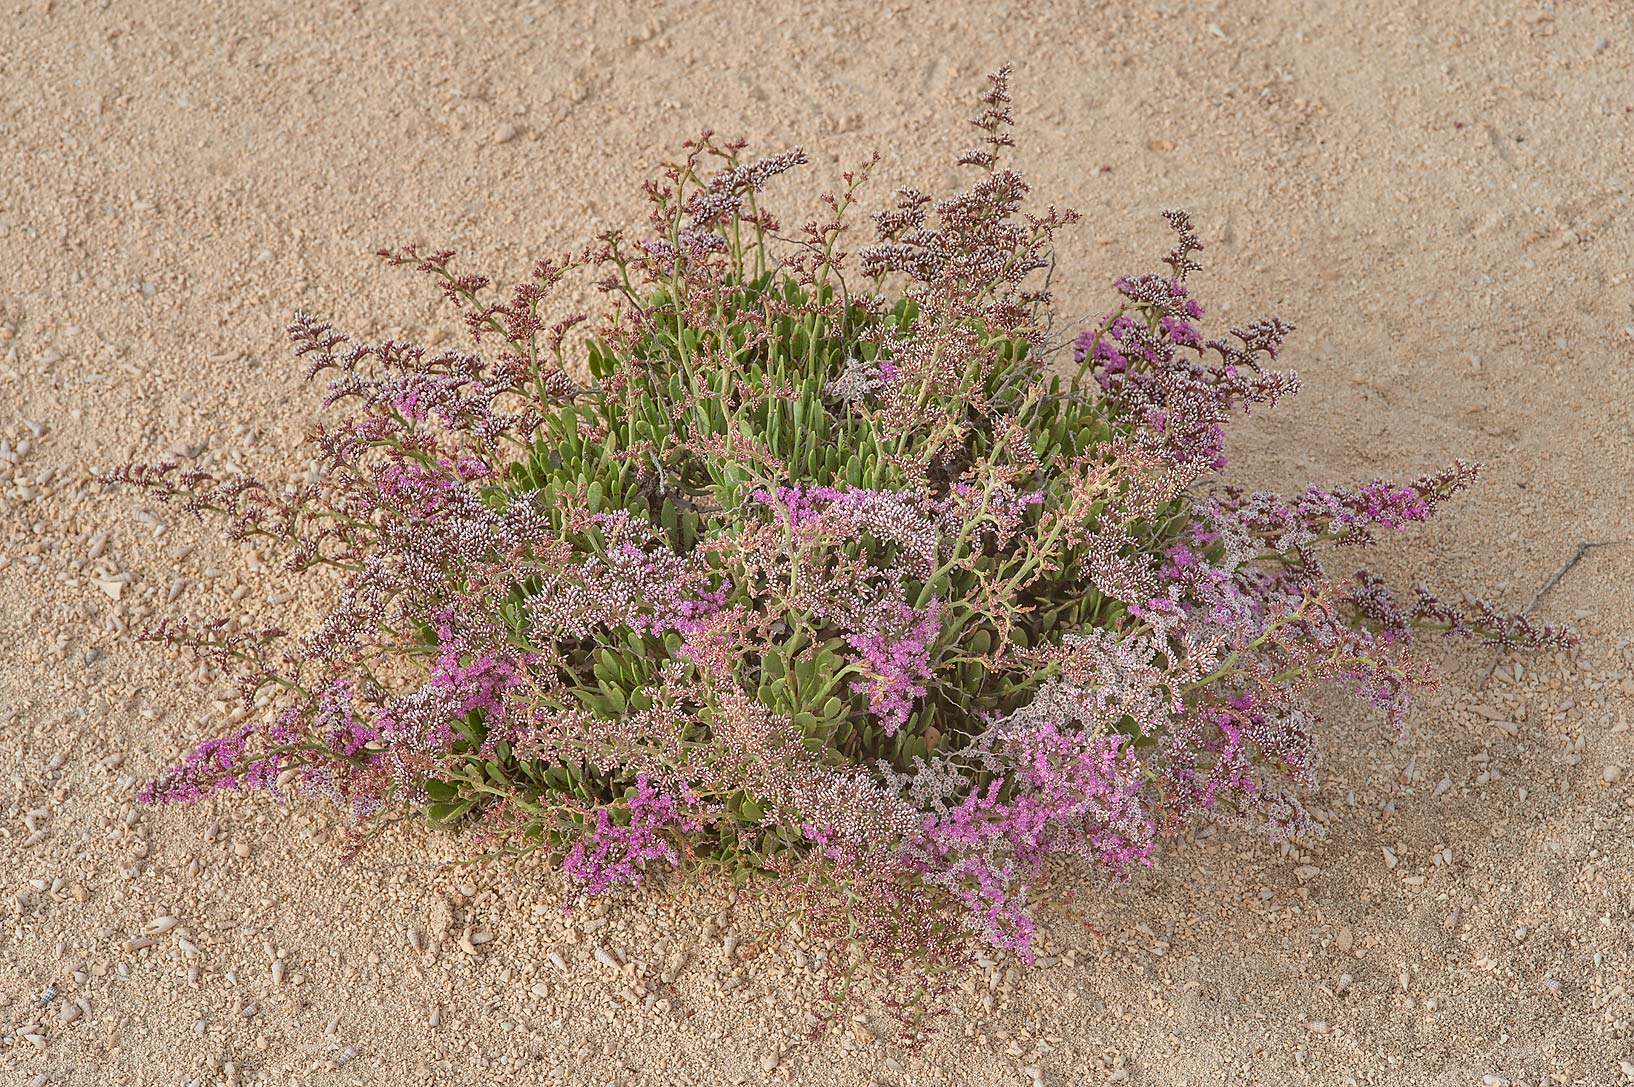 Sea lavender (Qetaif, Limonium axillare) on a...in Madinat Al Shamal area. Qatar